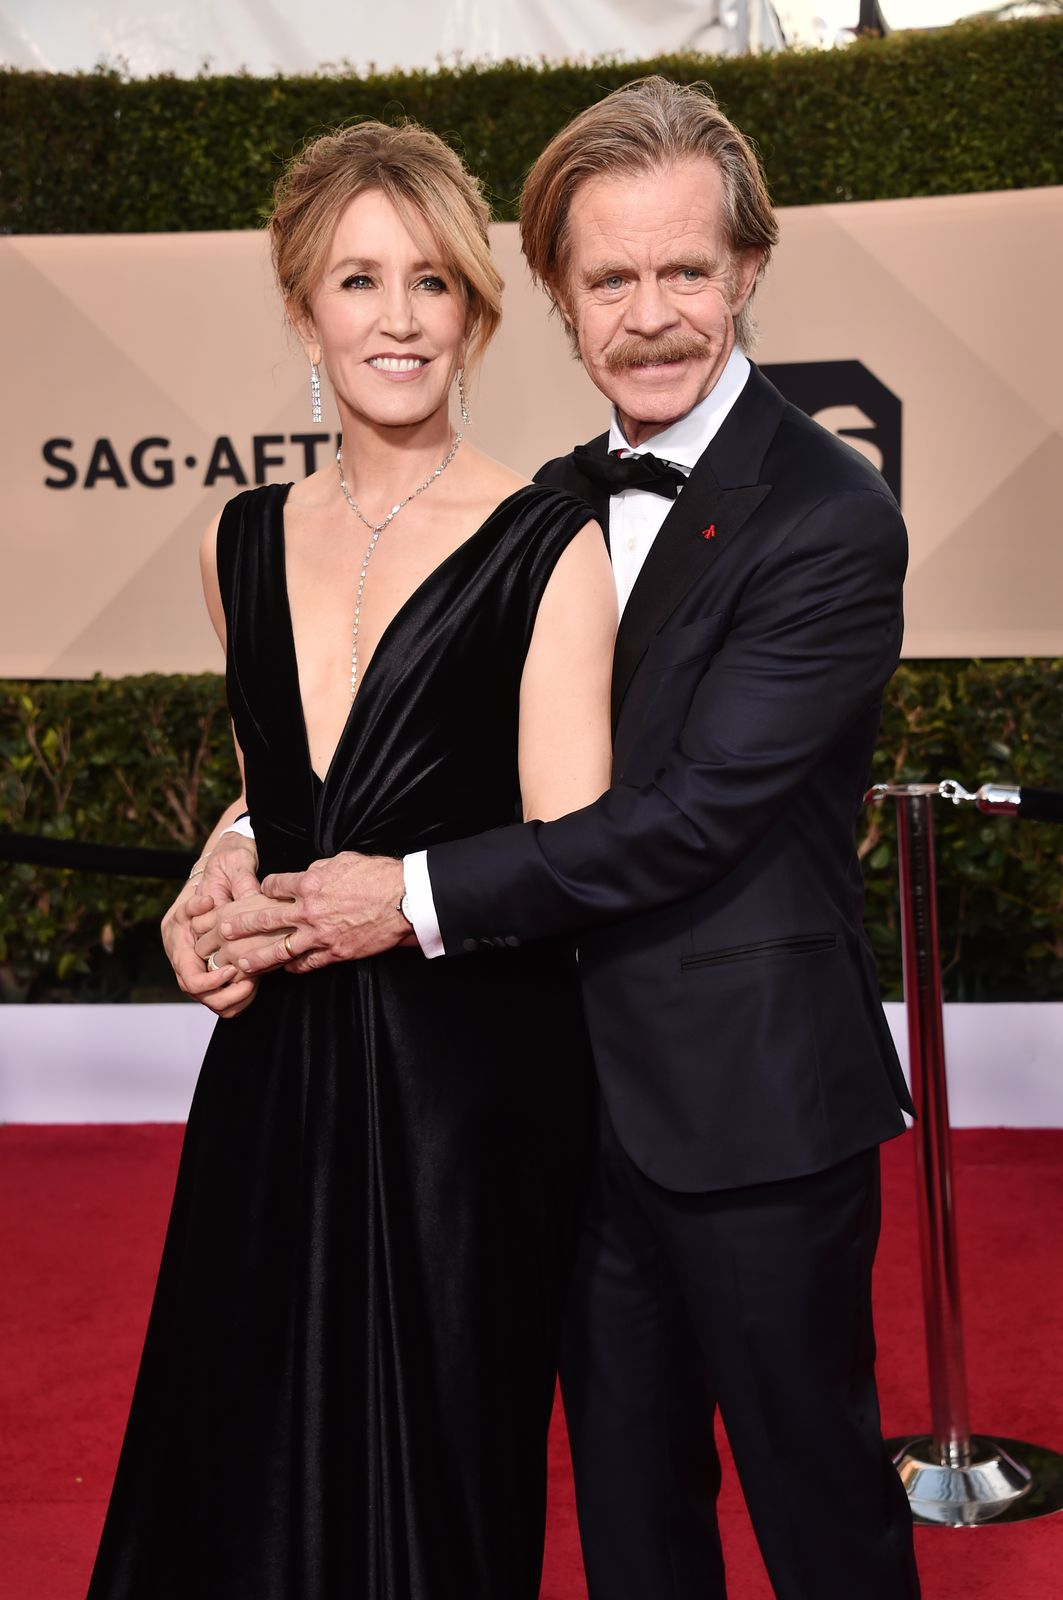 Felicity Huffman and William H. Macy at the 24th Annual Screen Actors Guild Awards on January 21, 2018, in Los Angeles, California | Photo: Alberto E. Rodriguez/Getty Images